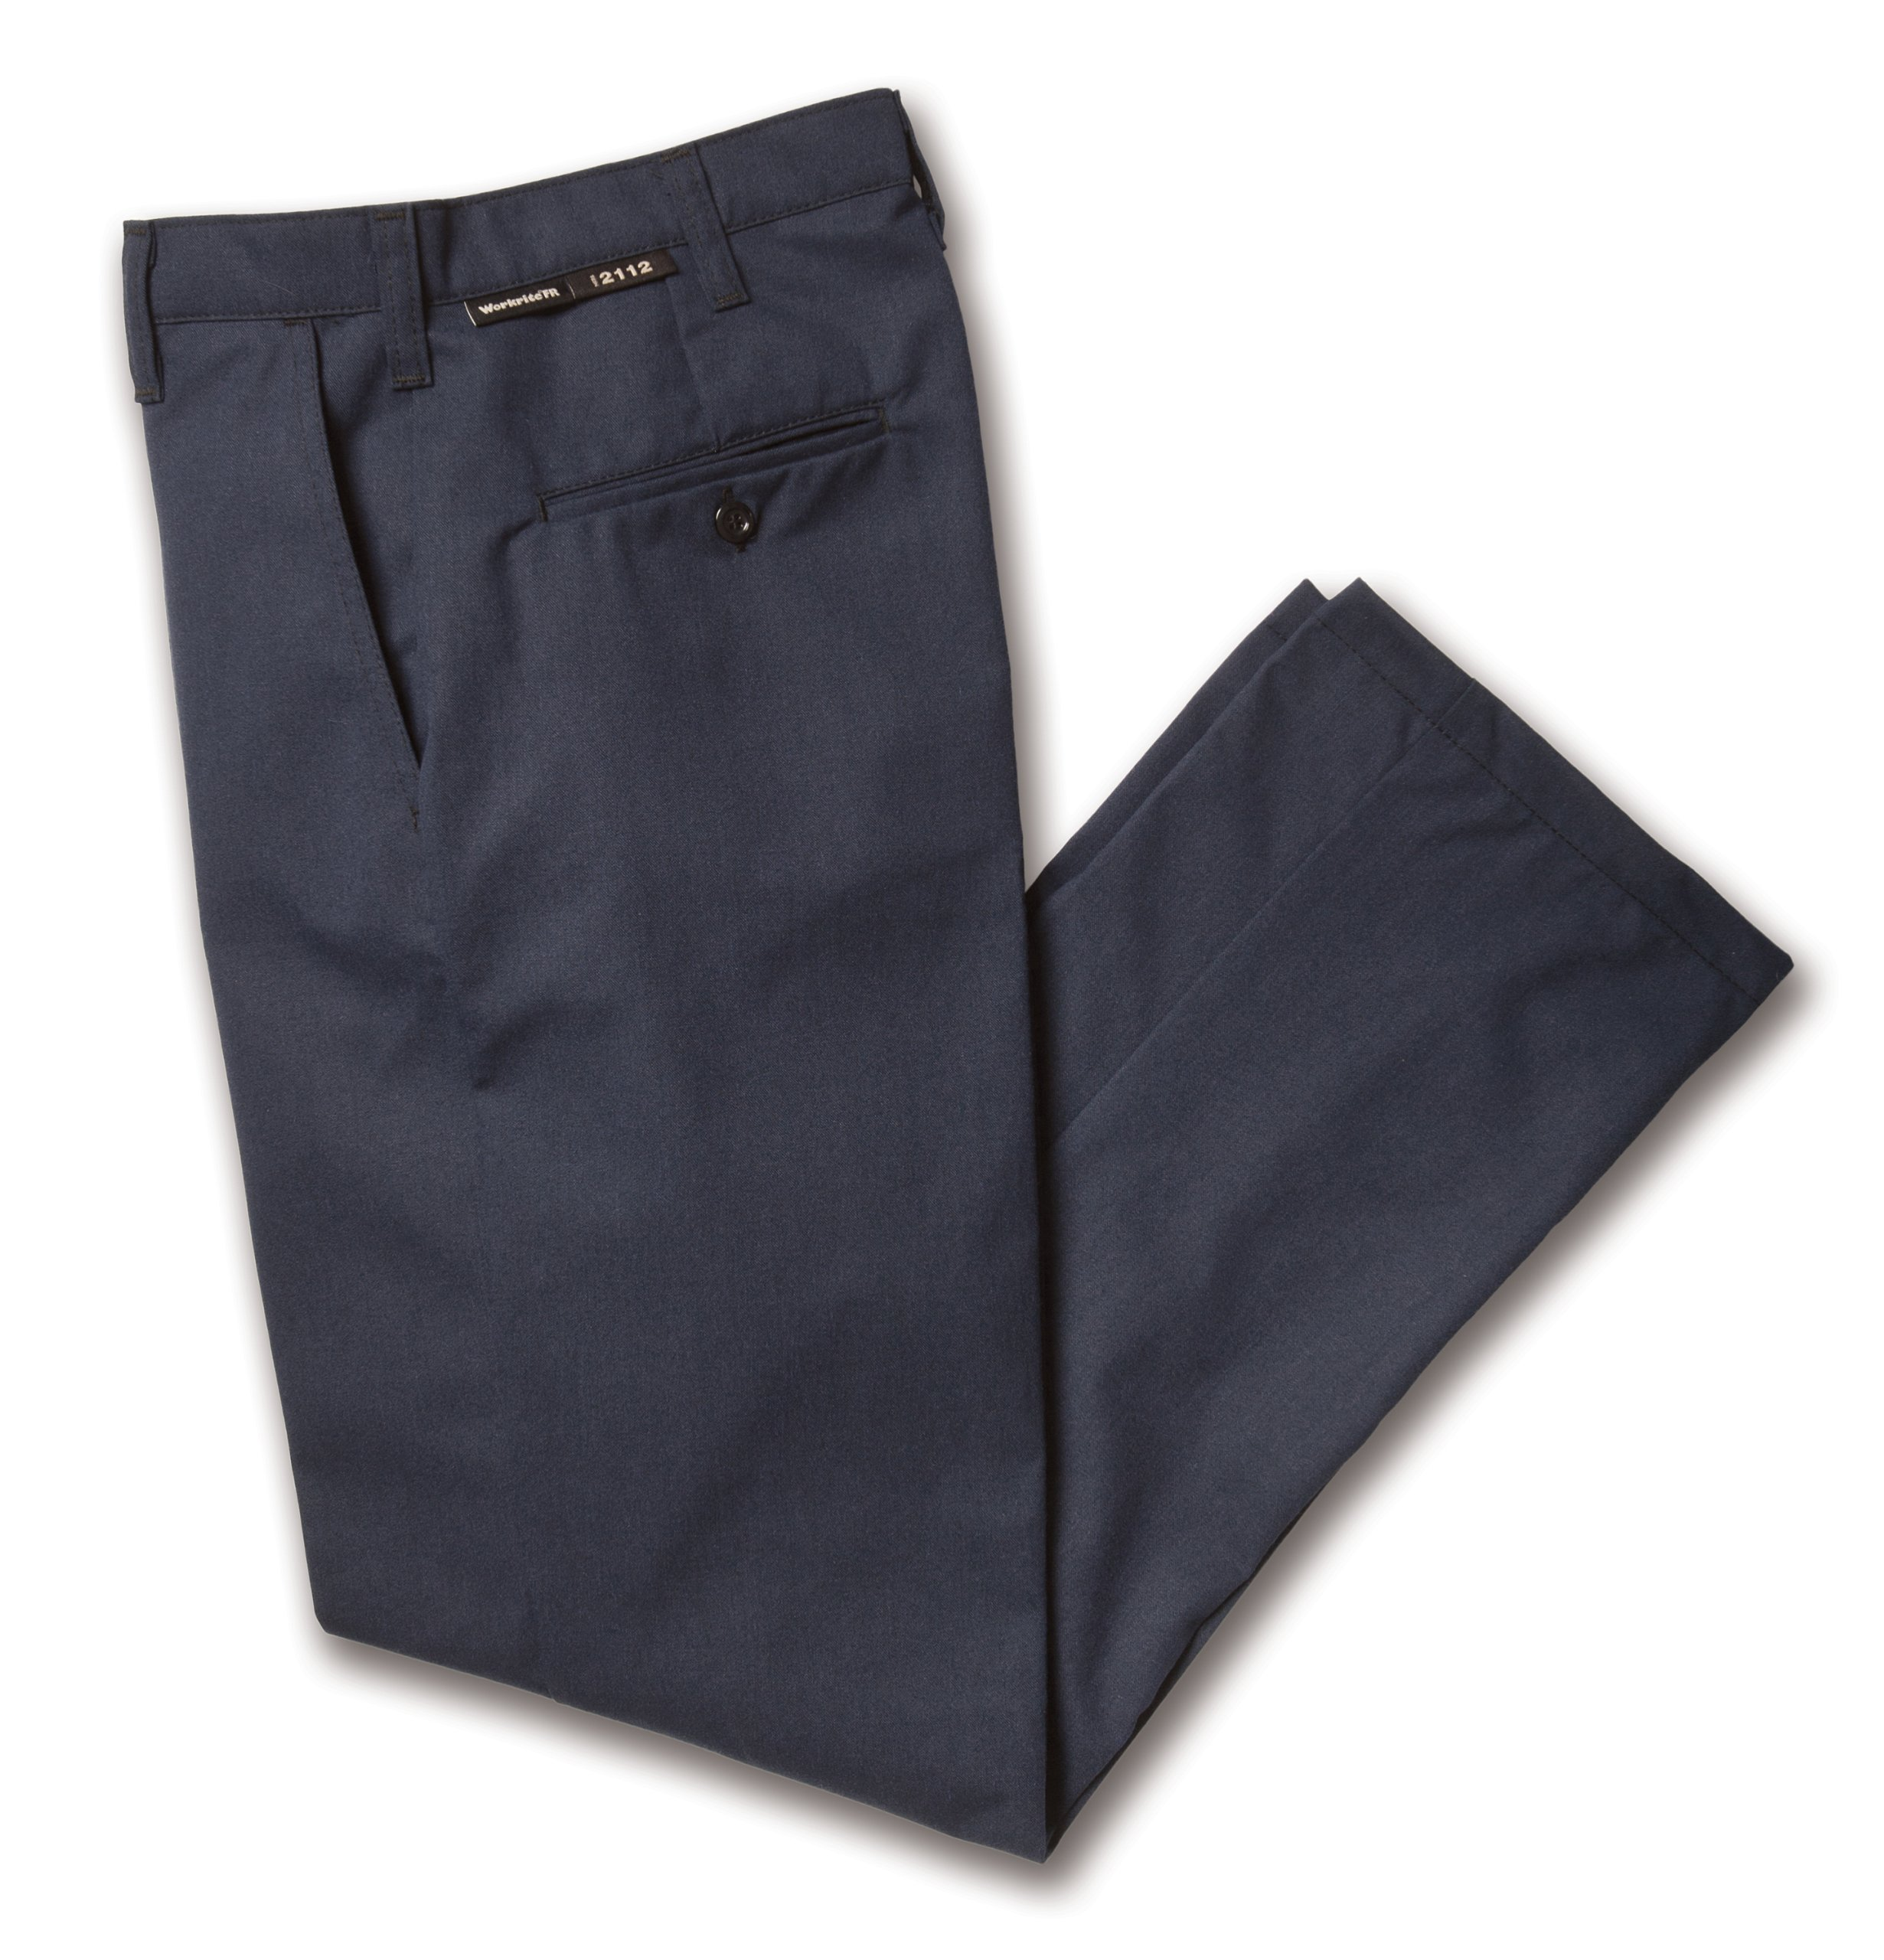 Workrite 433PO80NB36-32 Flame Resistant 8 oz Protera Work Pant, 36 Waist Size, 32 Inseam, Navy Blue